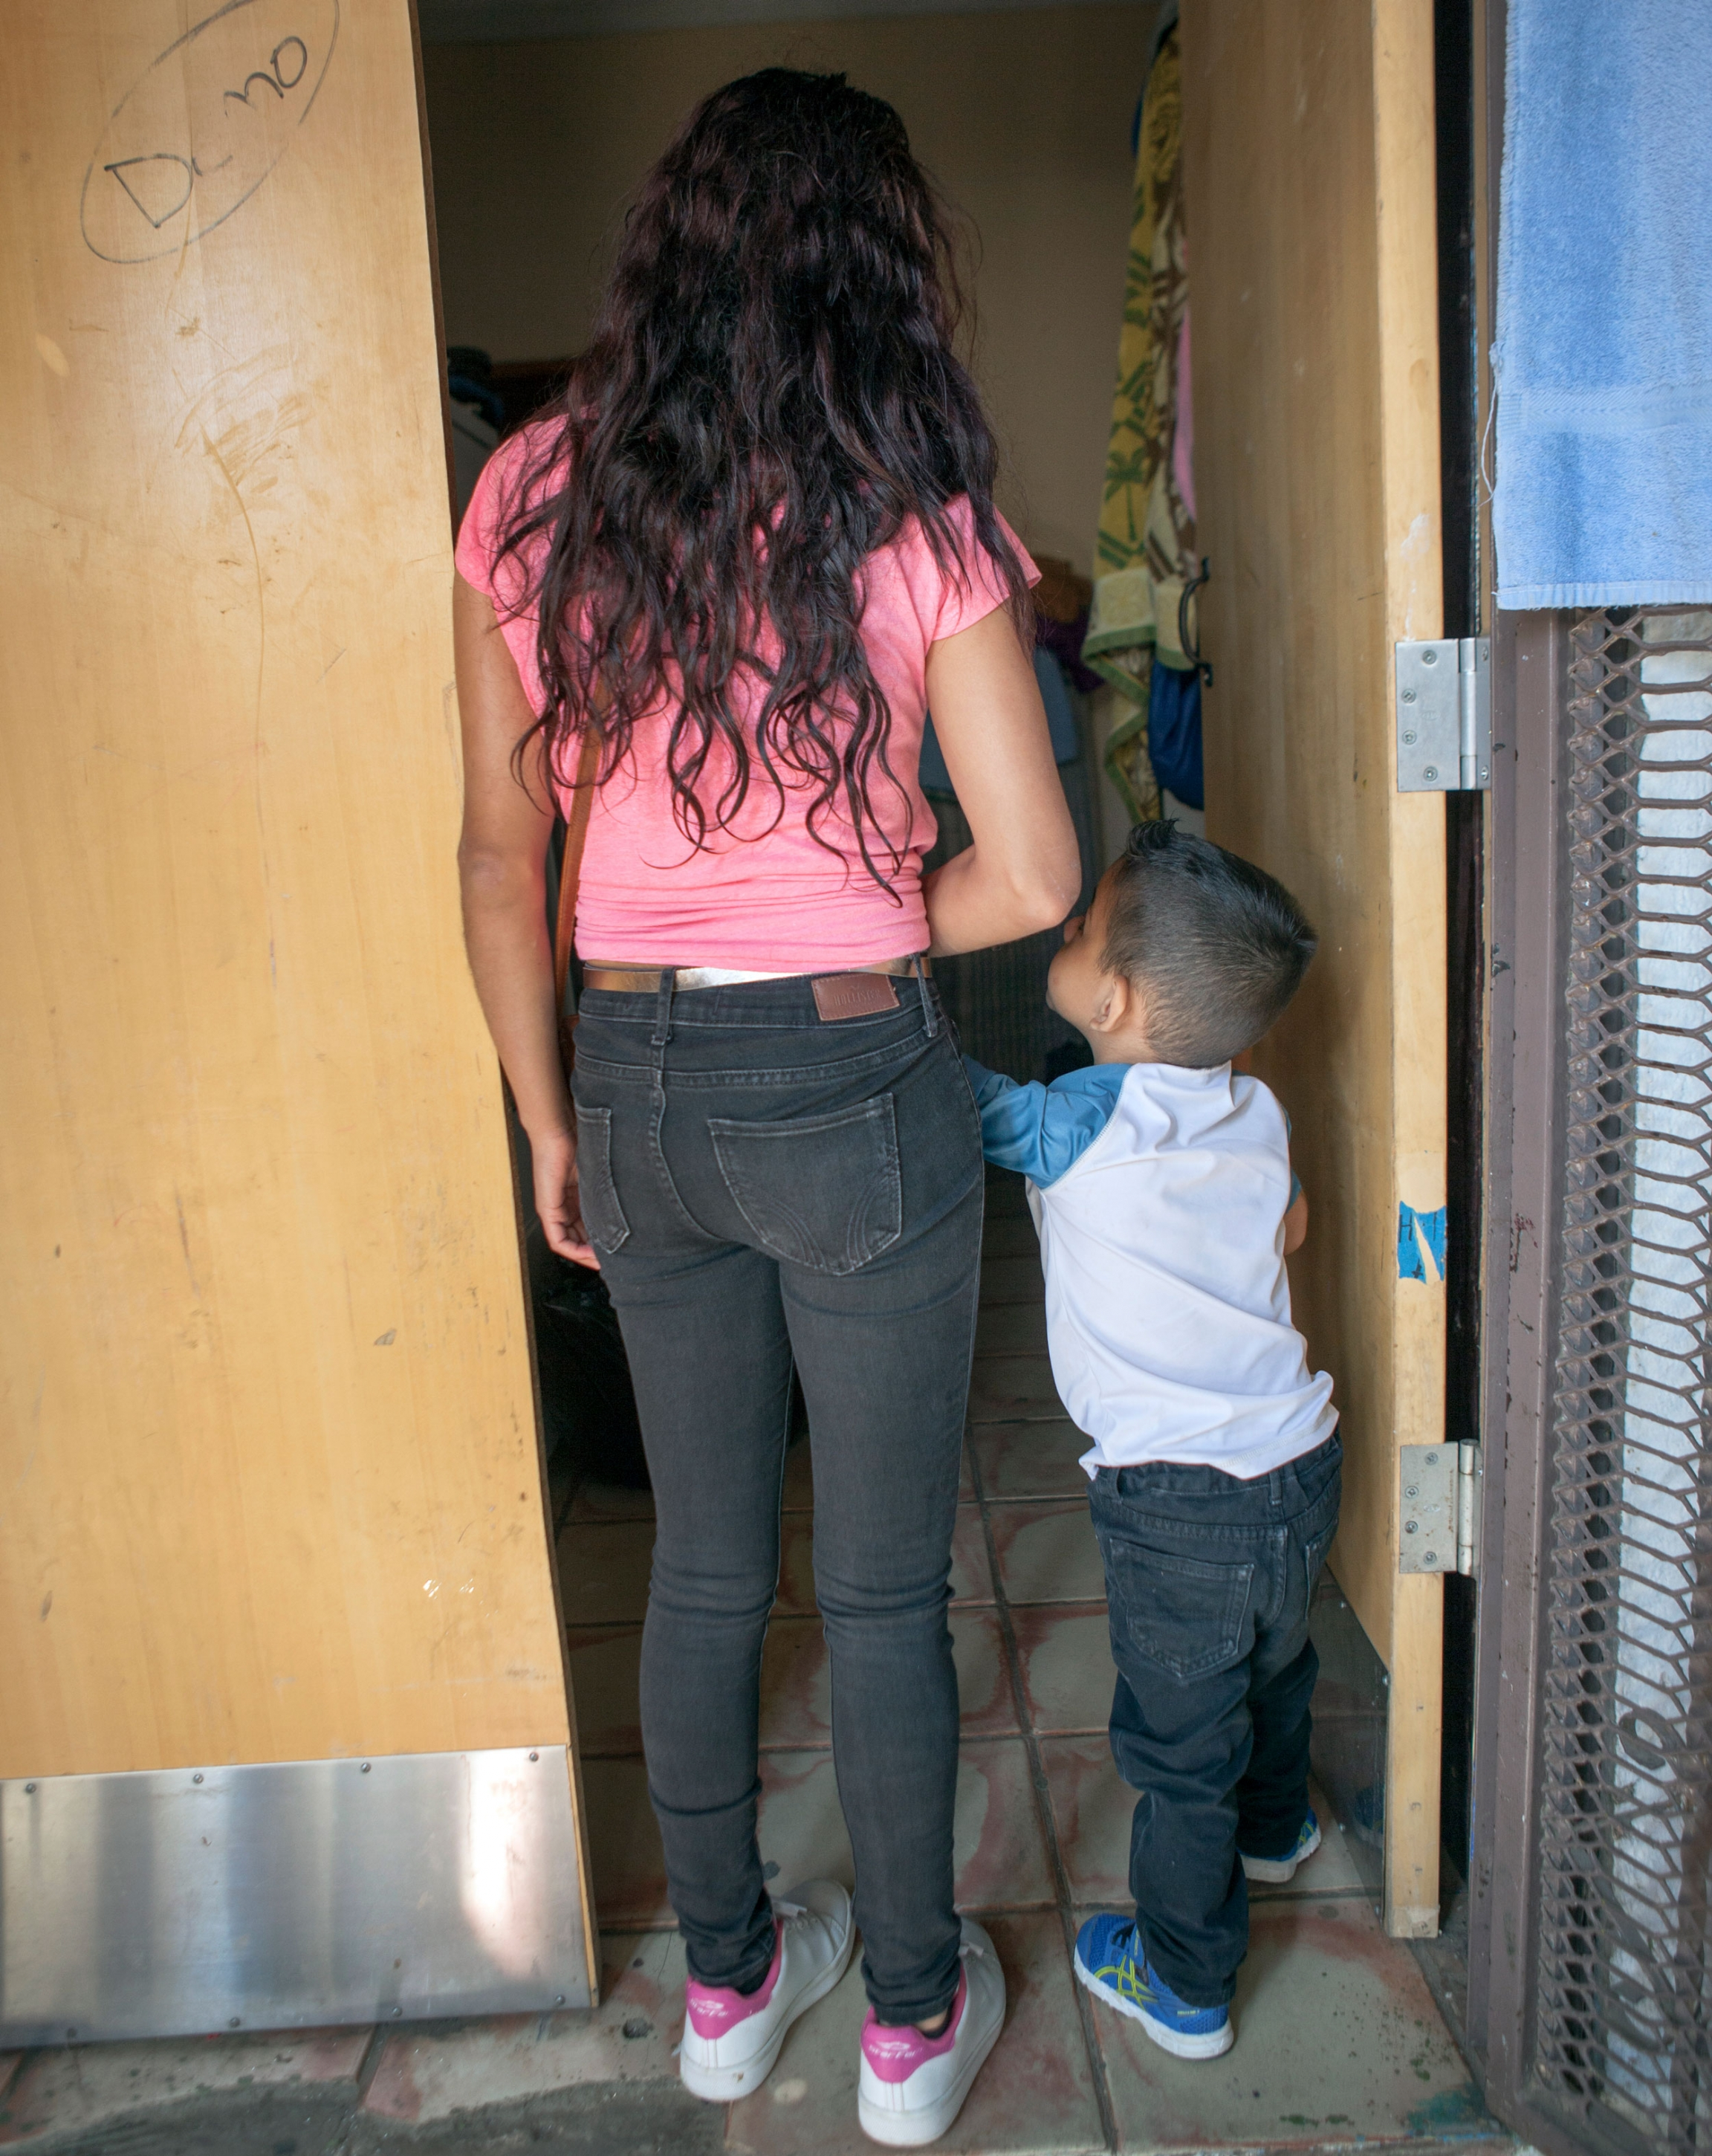 A woman is shown from behind and wearing a pink shirt and holding the hand of her son who is wearing a white shirt.